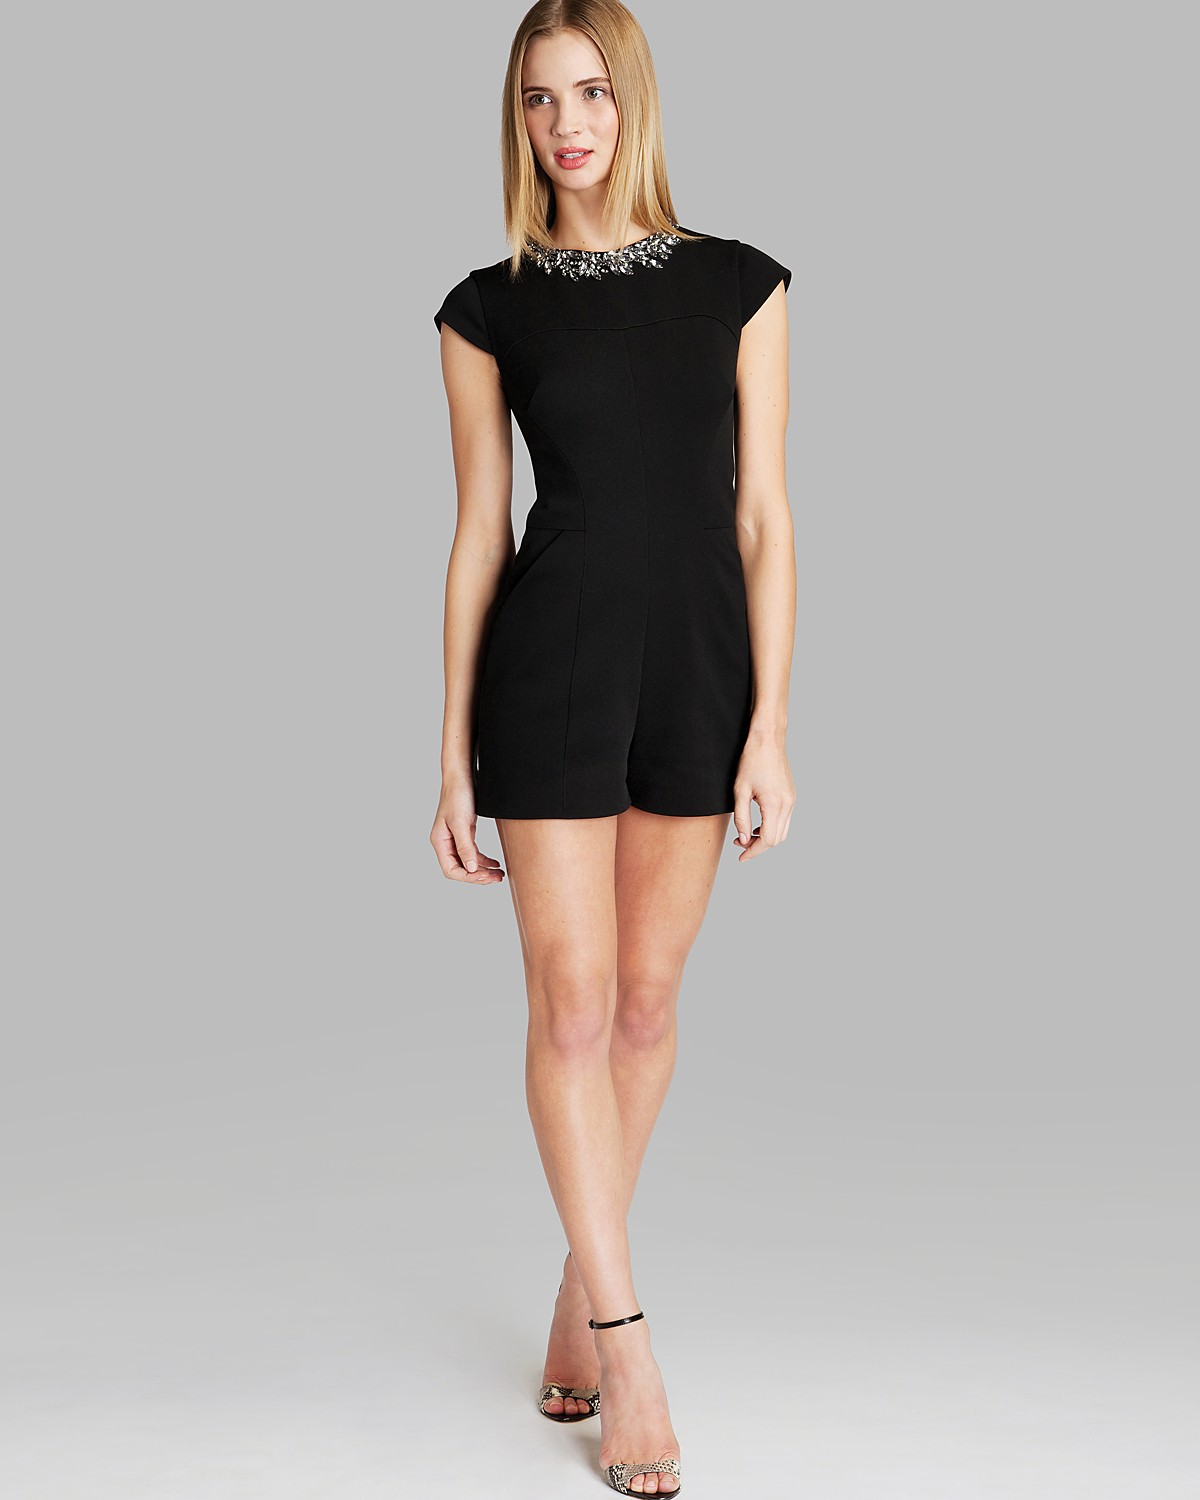 Ted Baker Romper - Evelin Embellished Neck | Bloomingdale's